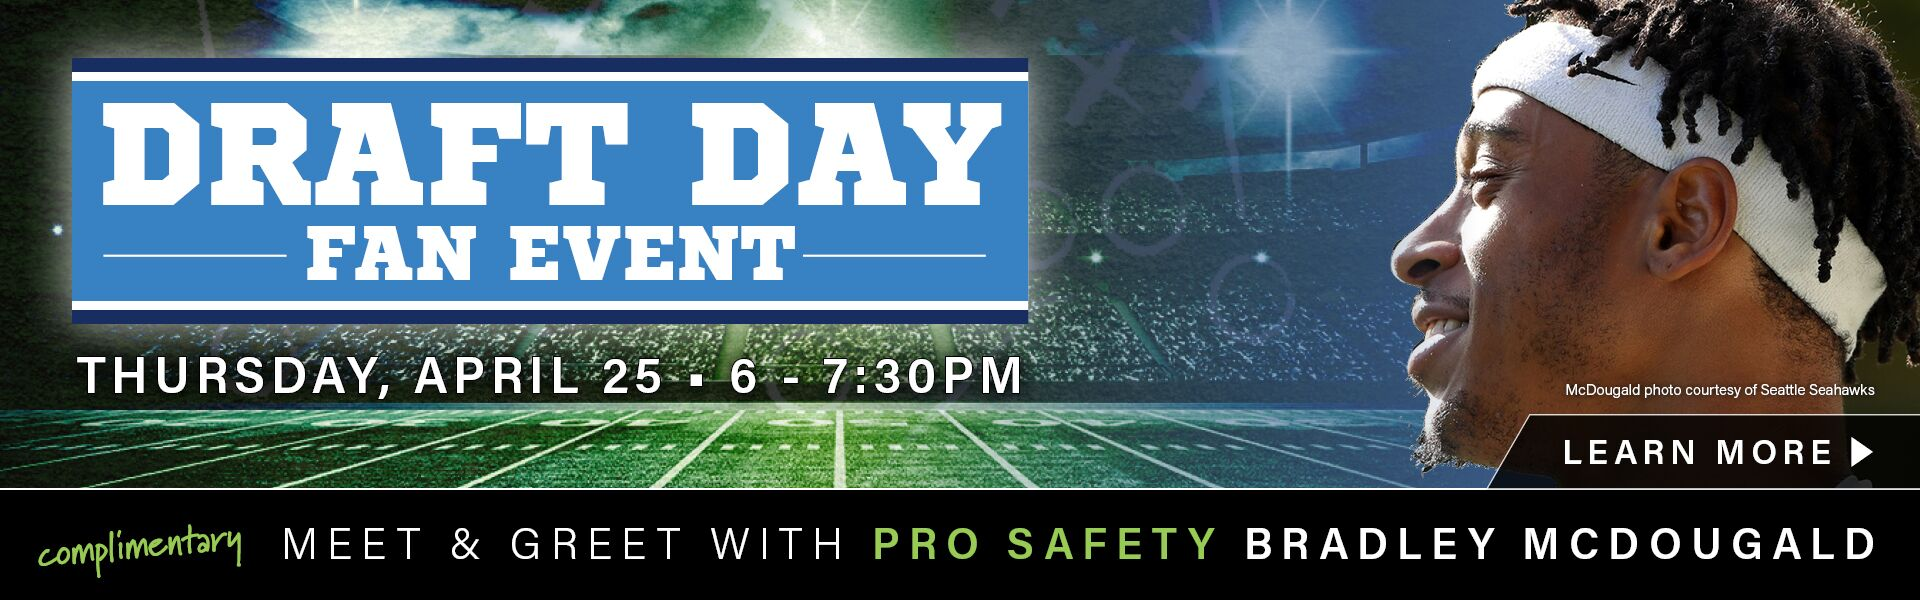 Draft Day Event